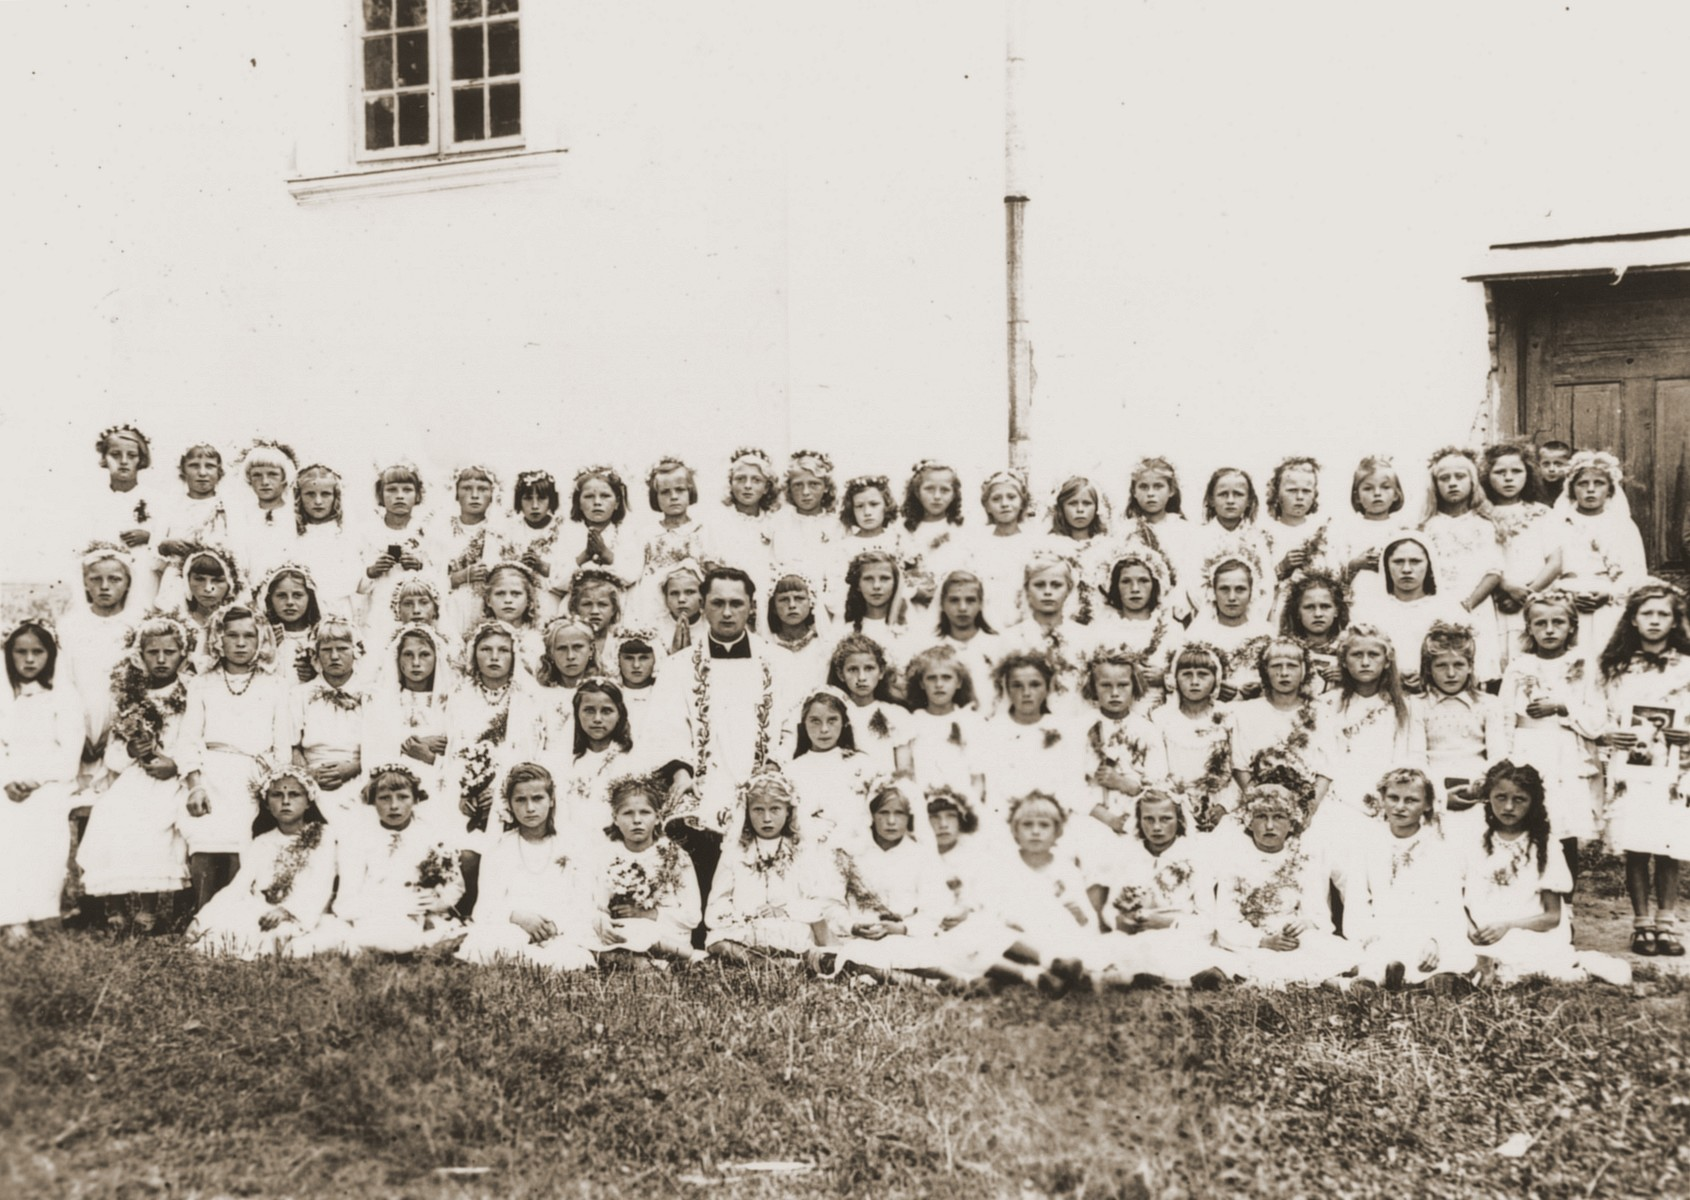 Group portrait of girls at a church school in Wysokie Mazowieckie, Poland, who are dressed for their first communion.  Among the children are twin Jewish sisters who are living in hiding.  The Jewish twins, Celina and Fela Friedmann, are pictured standing in the center of the back row.